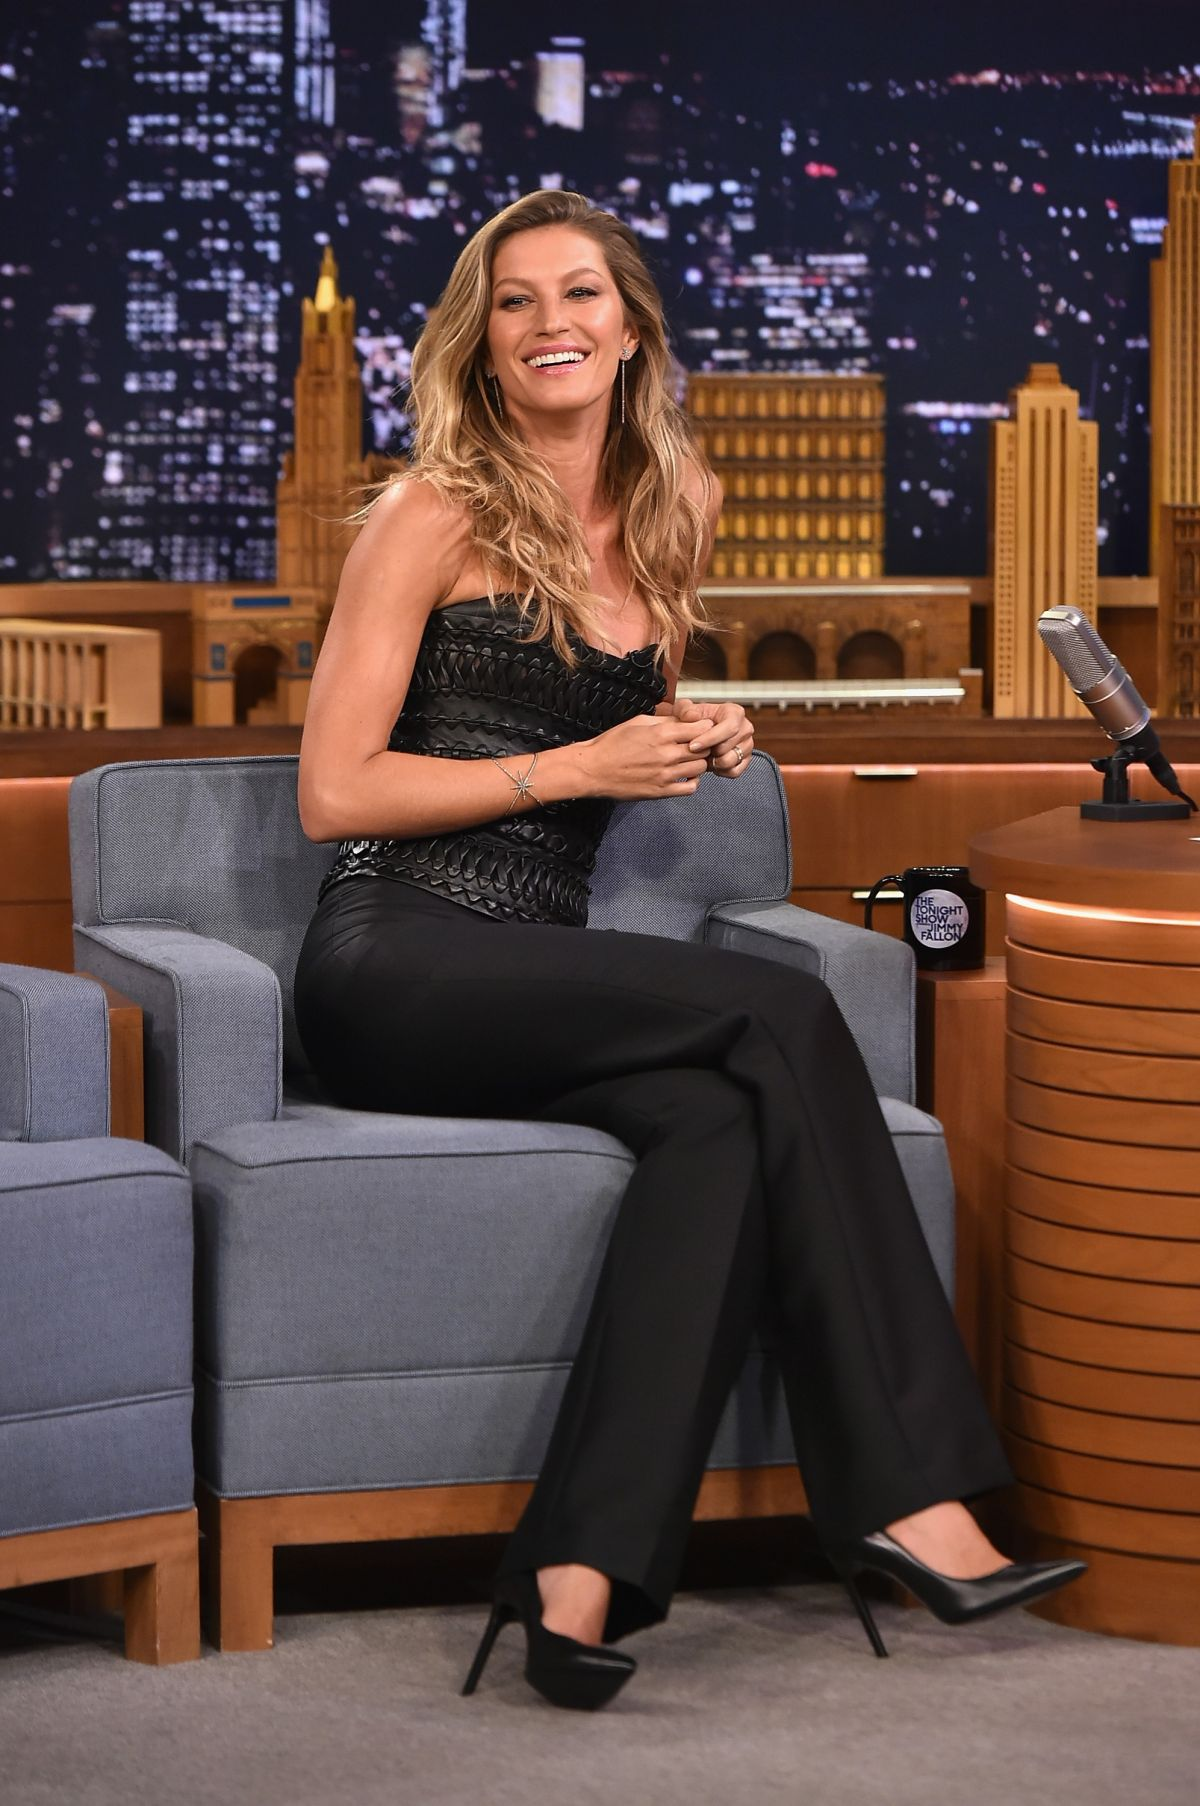 GISELE BUNDCHEN at The Tonight Show Starring Jimmy Fallon